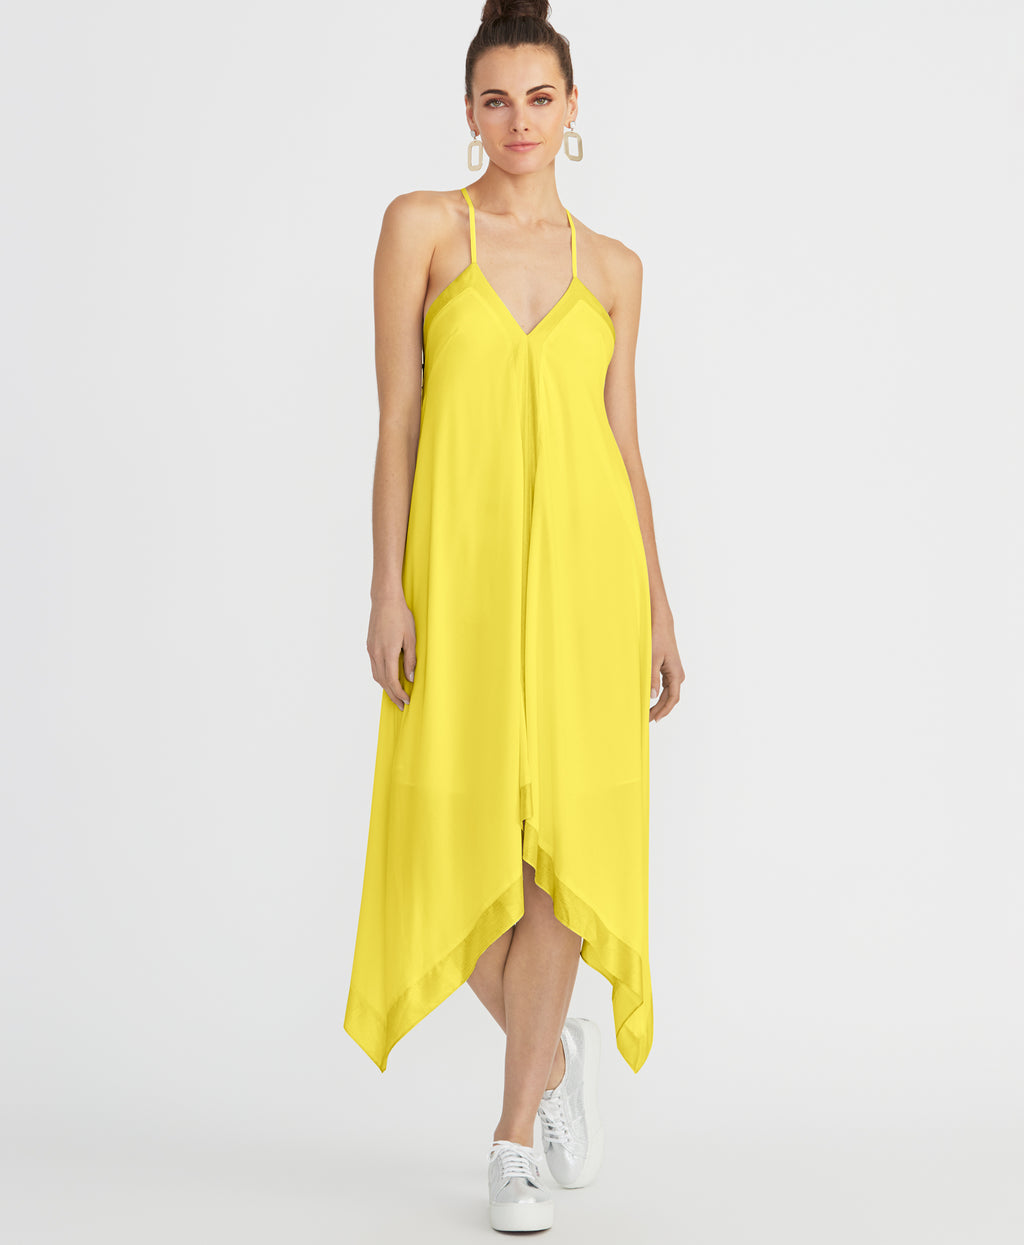 MADDELENA SCARF DRESS | SUNSHINE